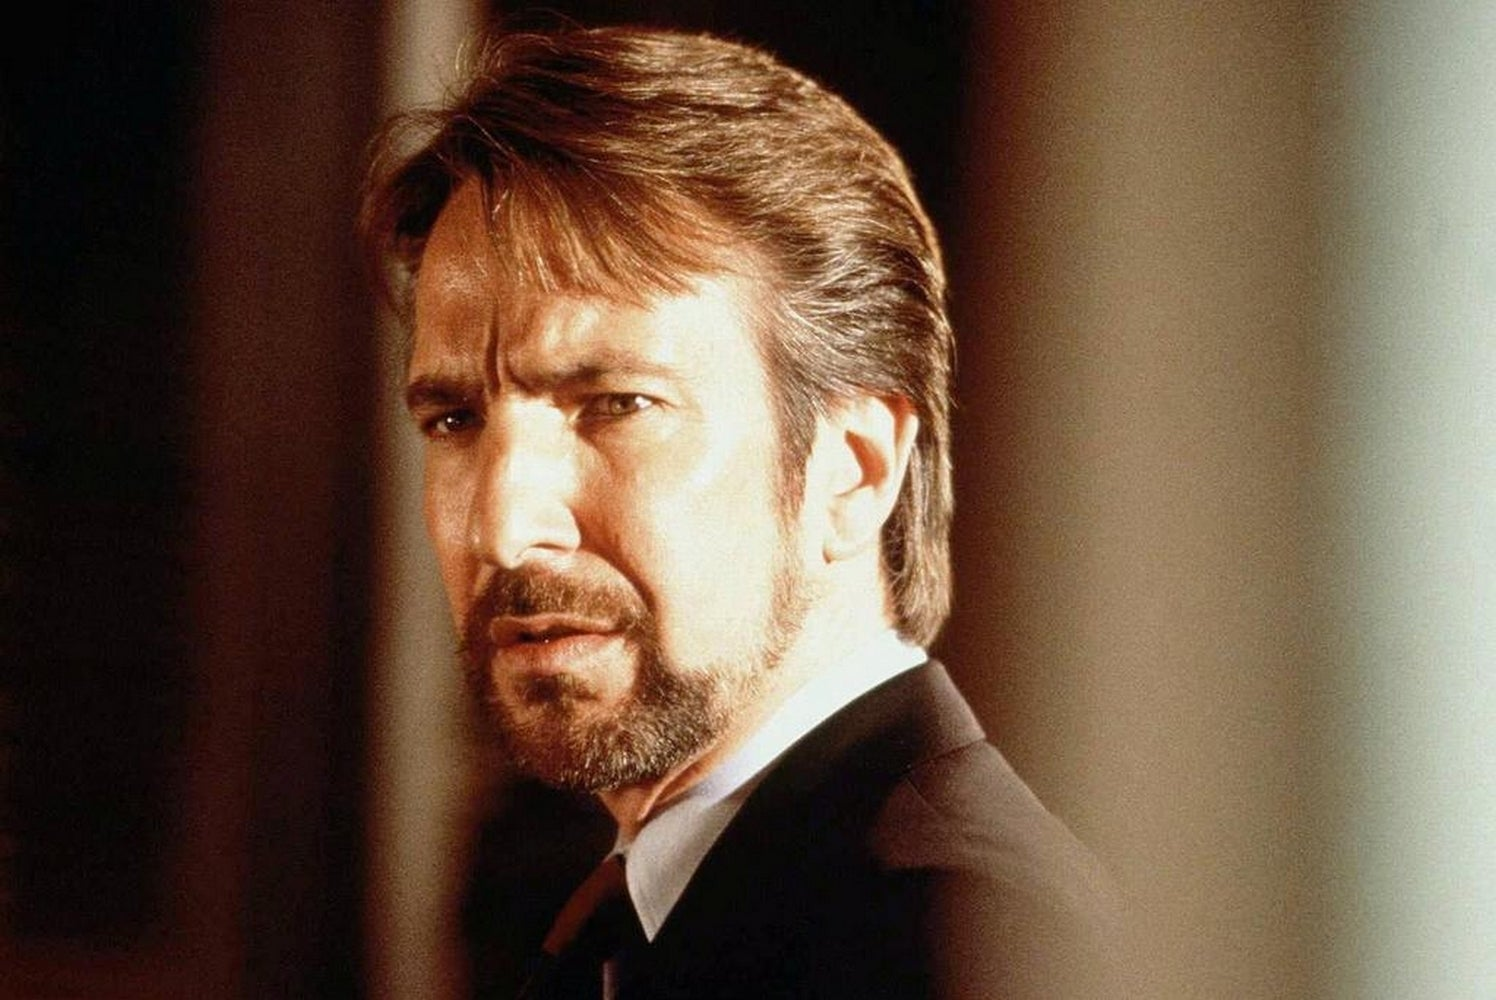 Alan Rickman dead: It's hard to believe the late actor began his film career aged 41